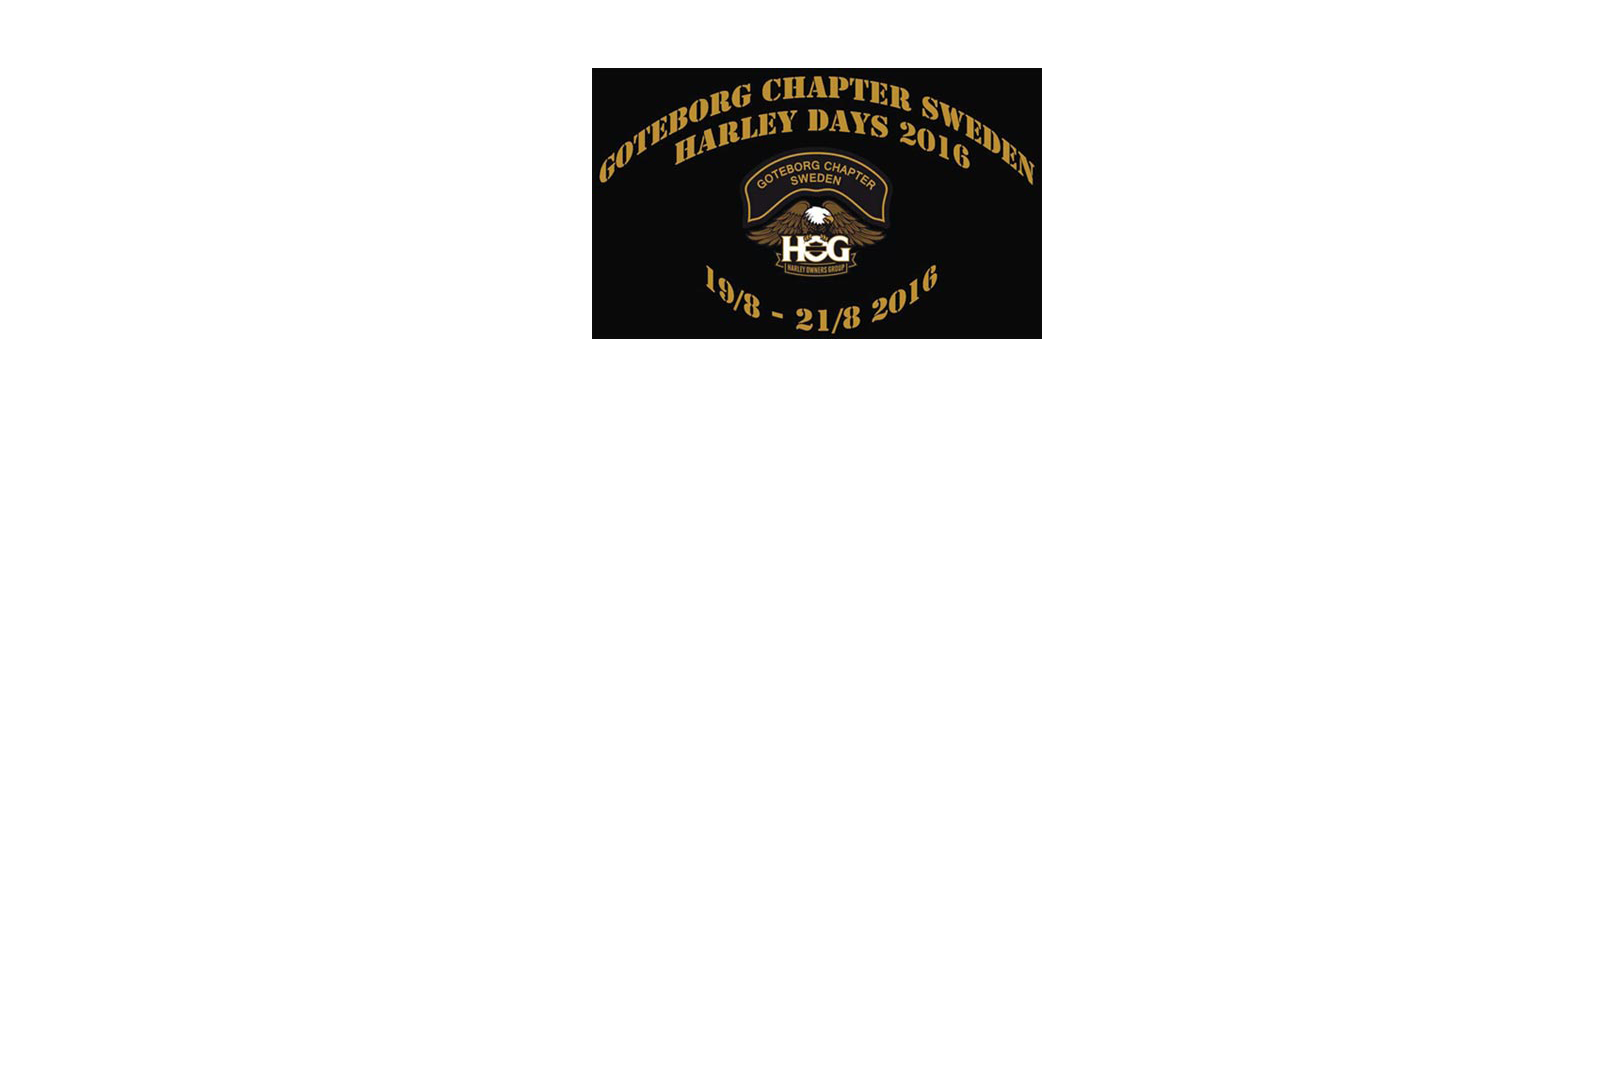 0001_logo_event_harleydays2016.png